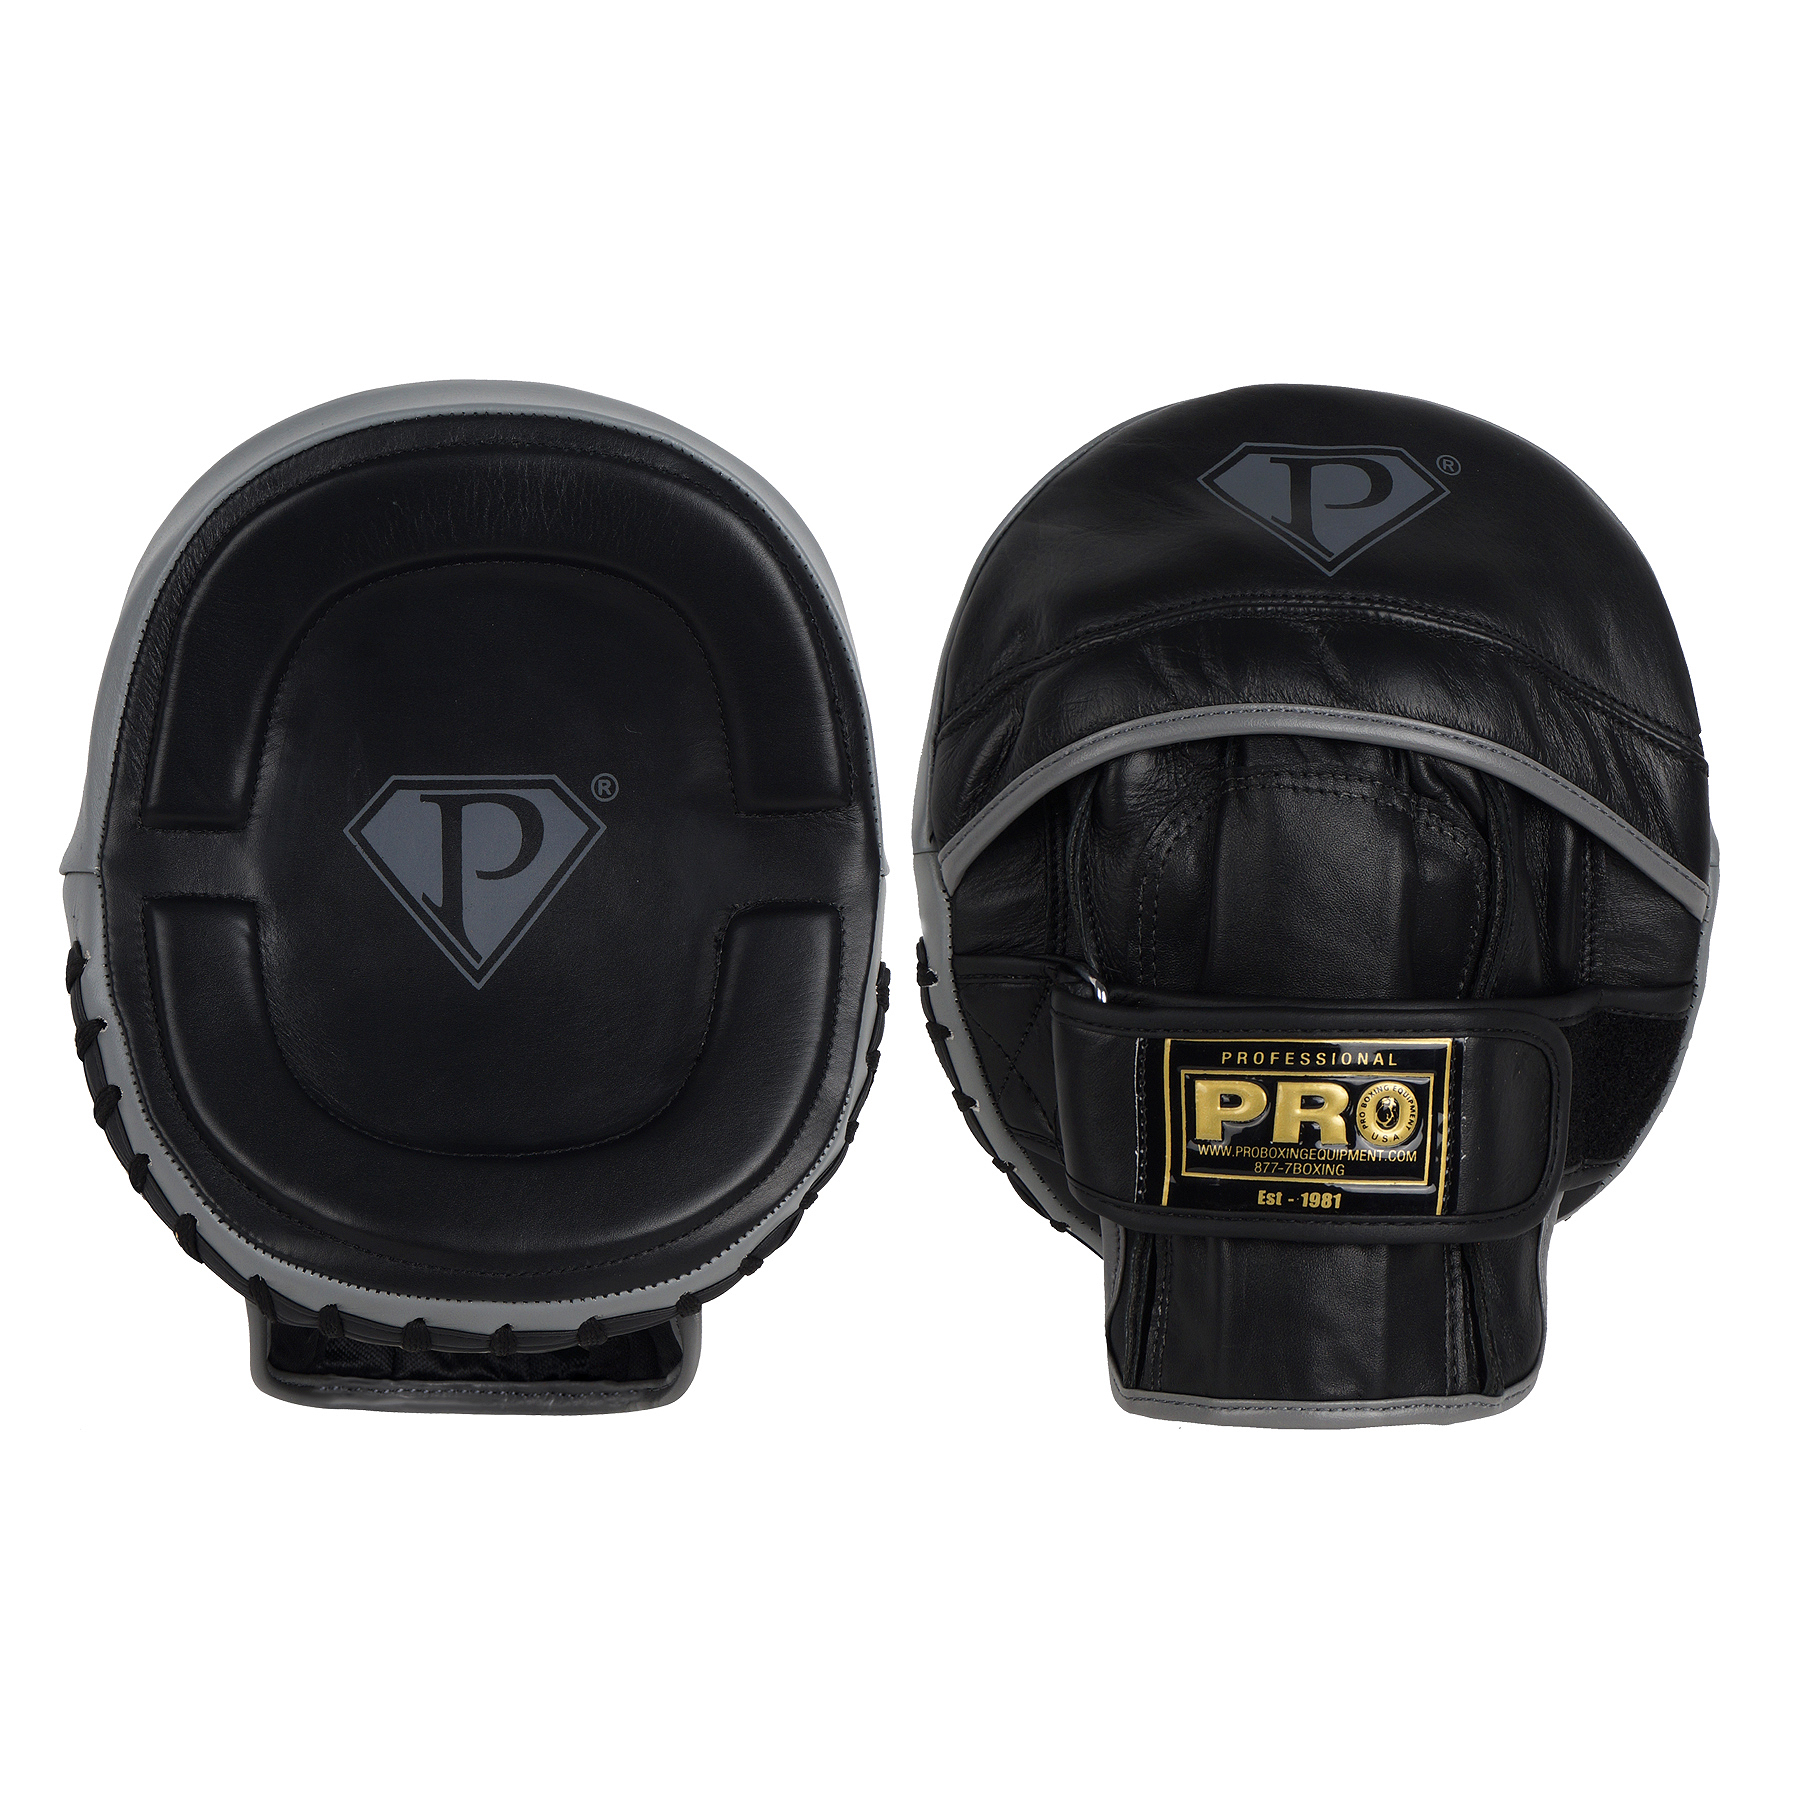 PRO Deluxe Contoured Micro Punch Mitts Leather